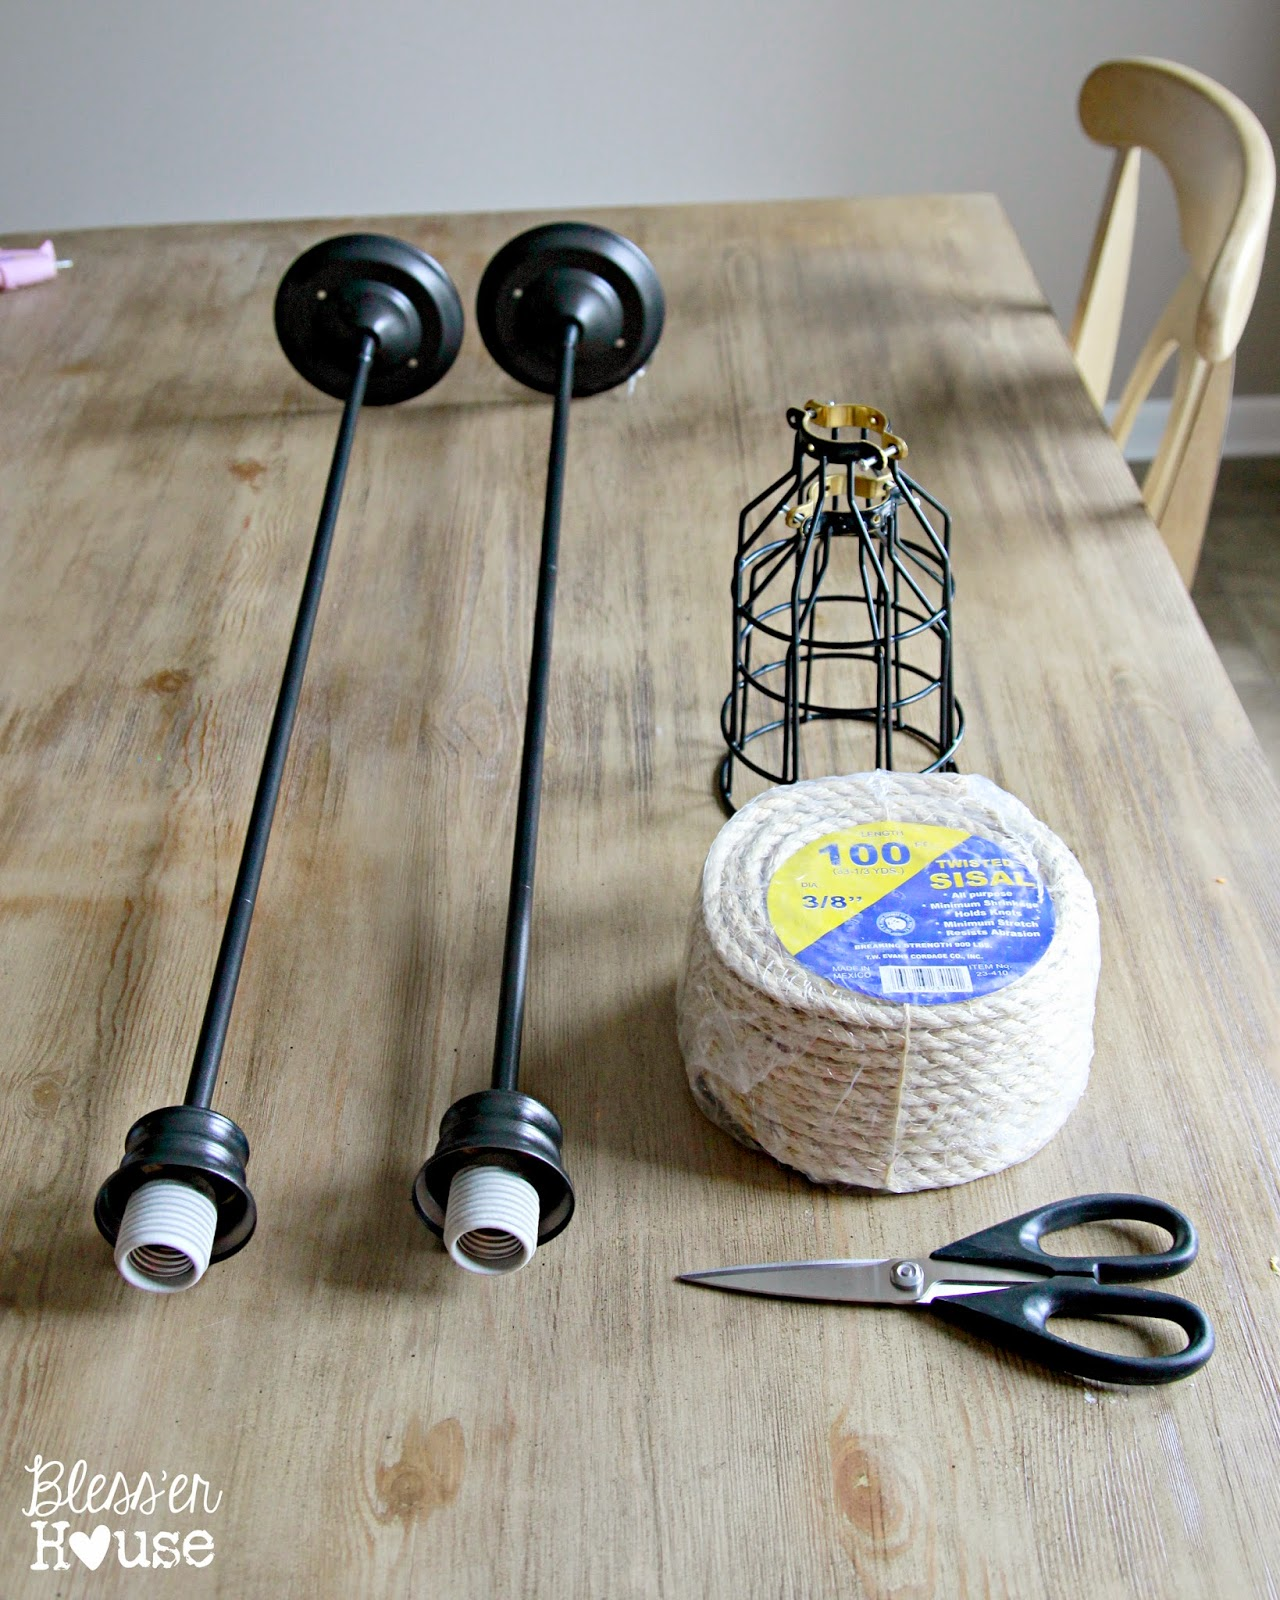 Diy industrial pendant light for under 10 bless 39 er house for How to make an industrial lamp